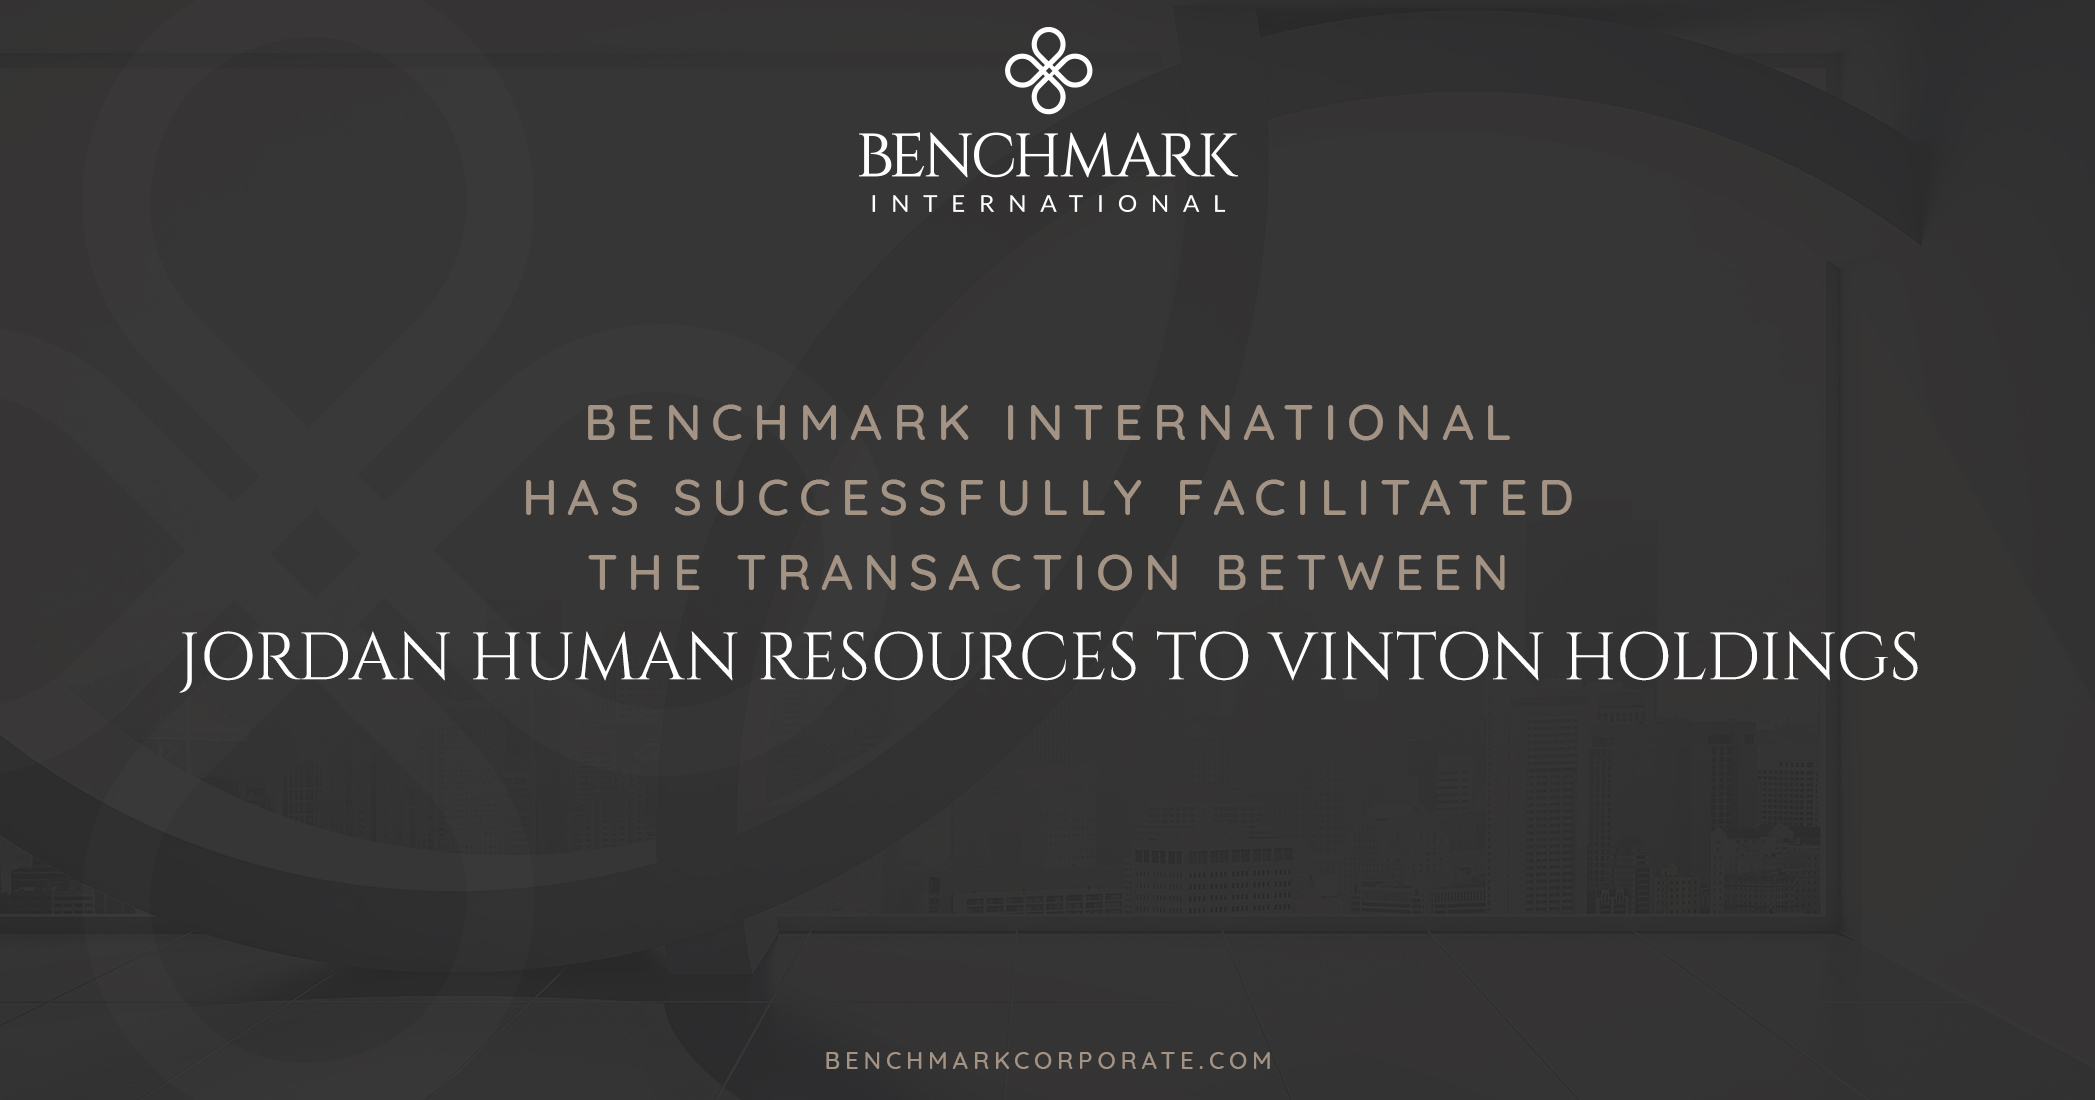 Benchmark International Successfully Facilitated the Transaction of Jordan Human Resources To Vinton Holdings